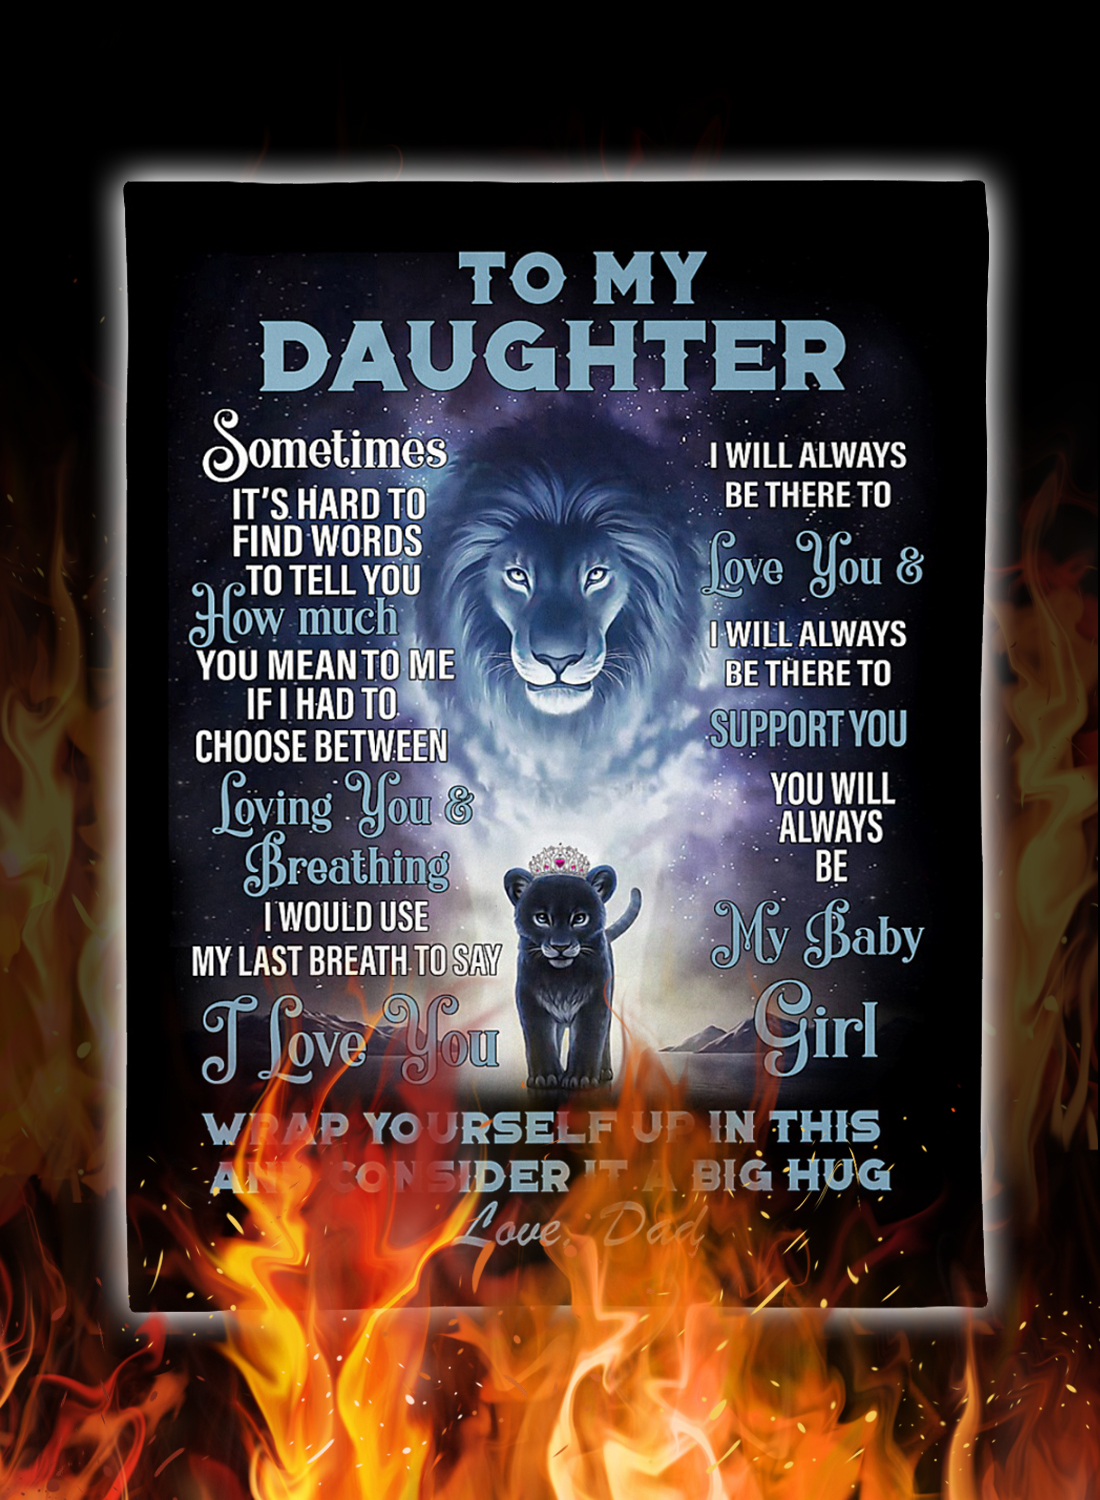 Lion to my daughter love dad blanket 3